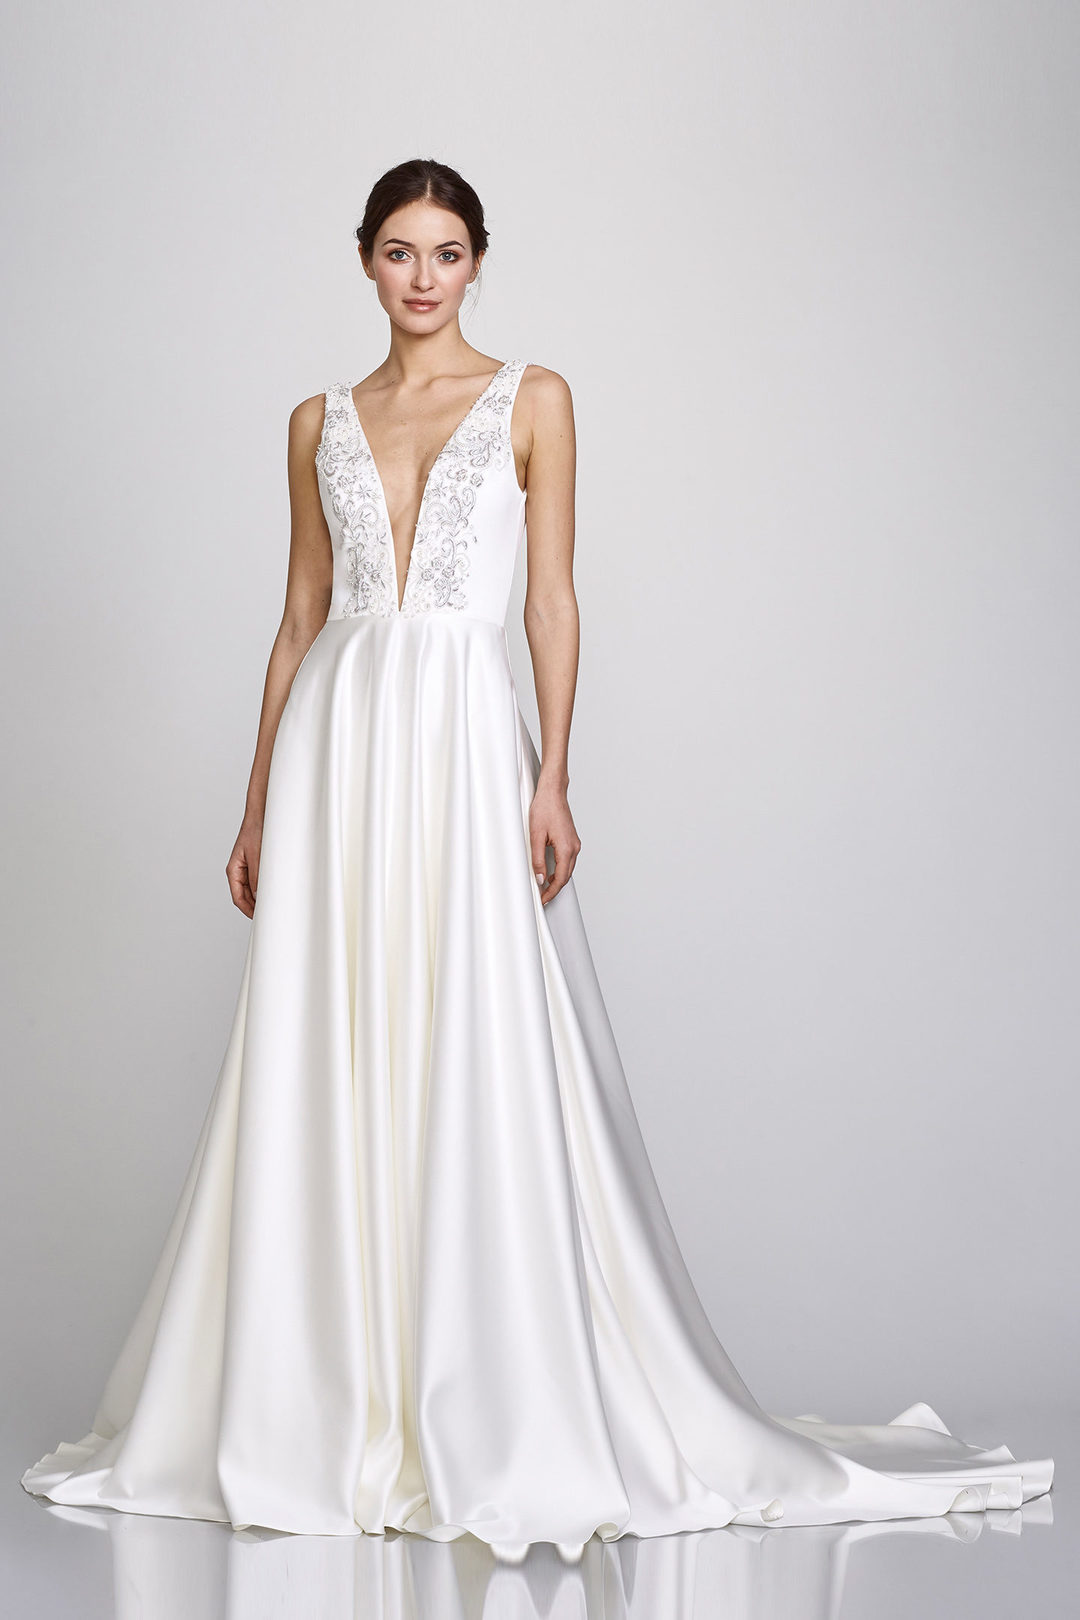 890581 alexandra  dress photo